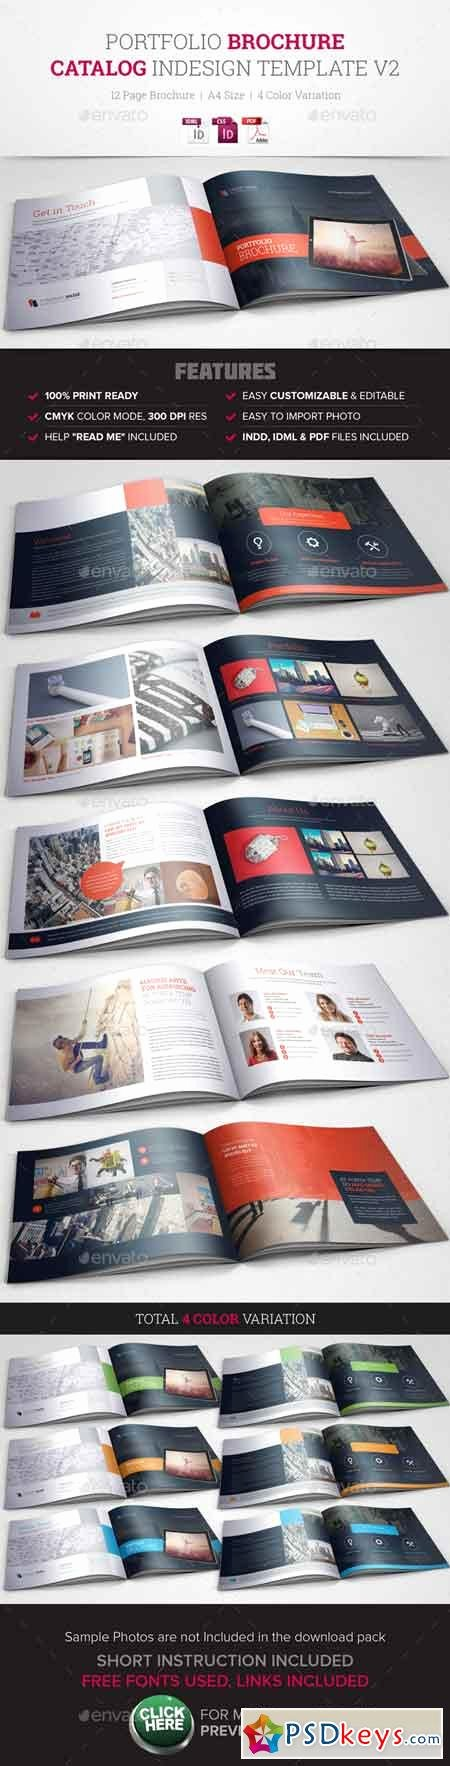 Indesign Portfolio Template Free Inspirational Portfolio Brochure Indesign Template V2 Free